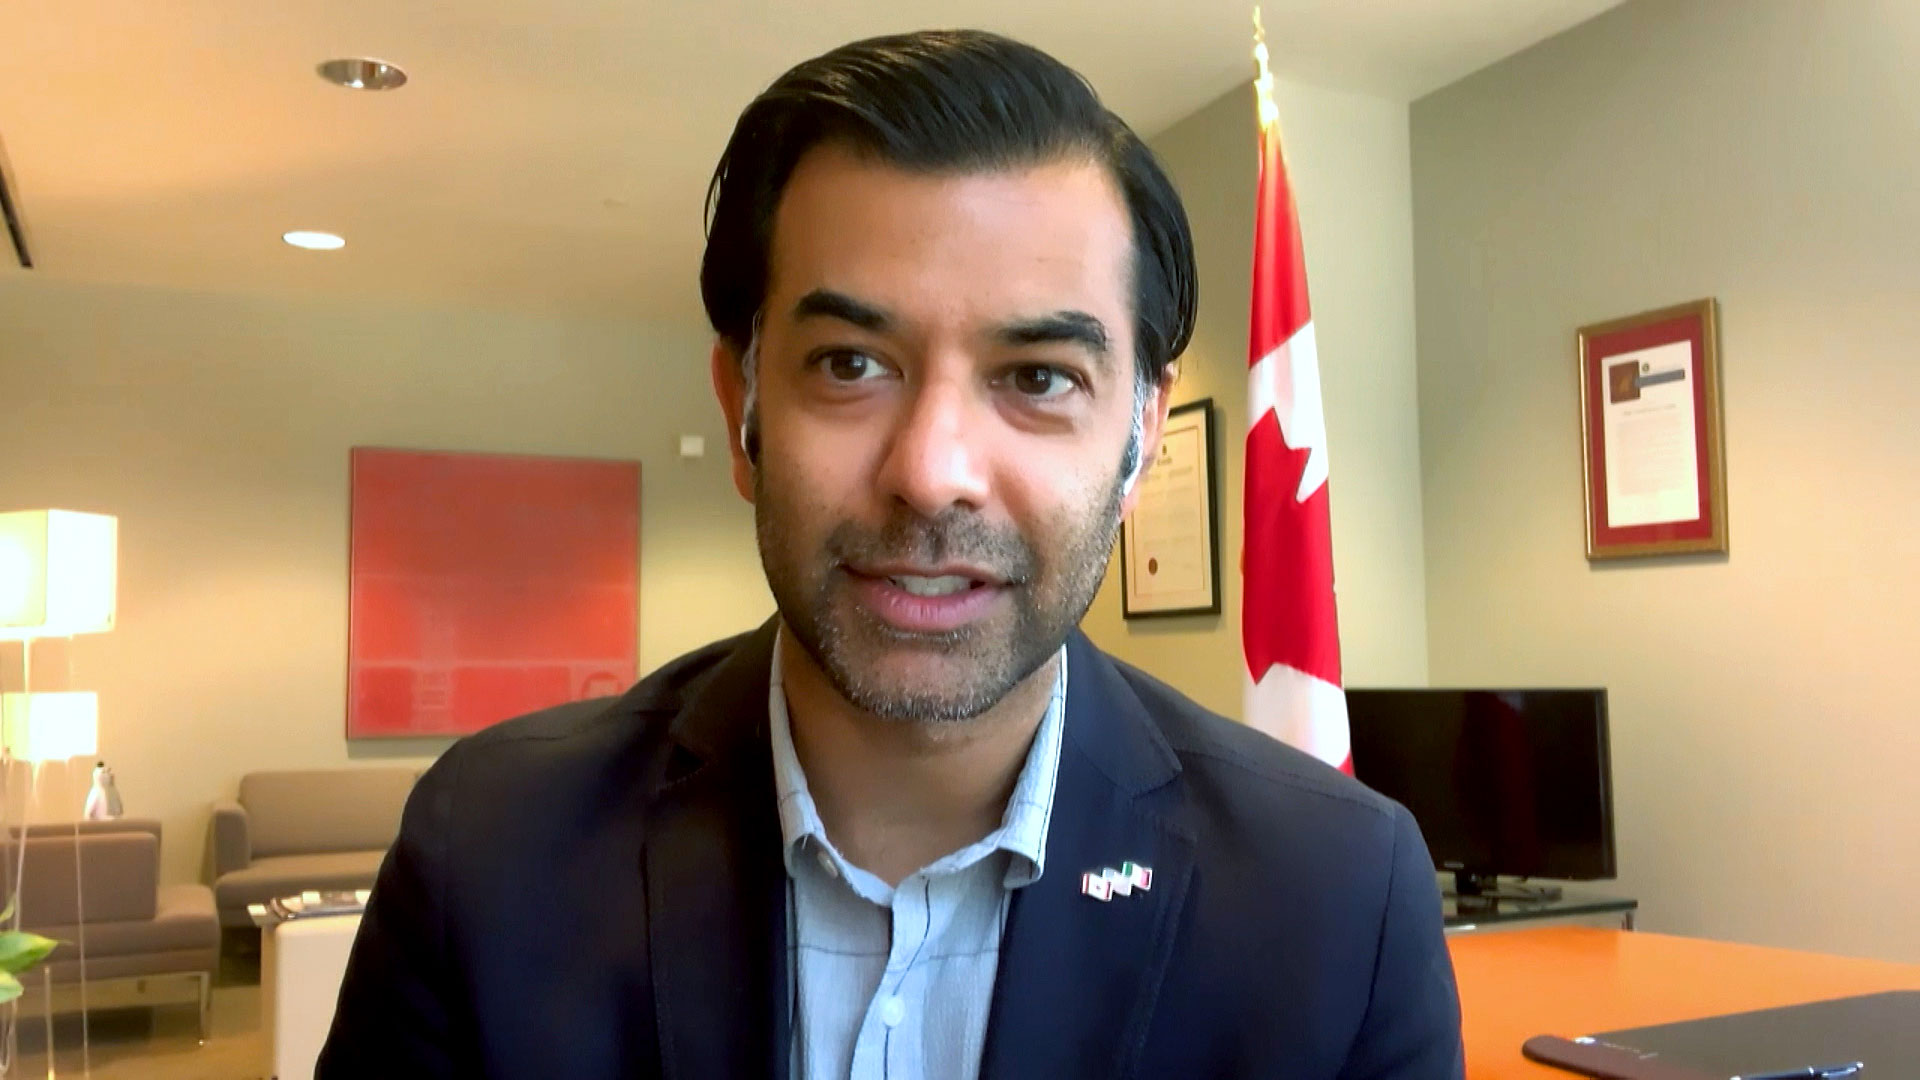 Canadian Consul General of Los Angeles Zaib Shaikh during an interview with Arizona 360 on July 8, 2020.